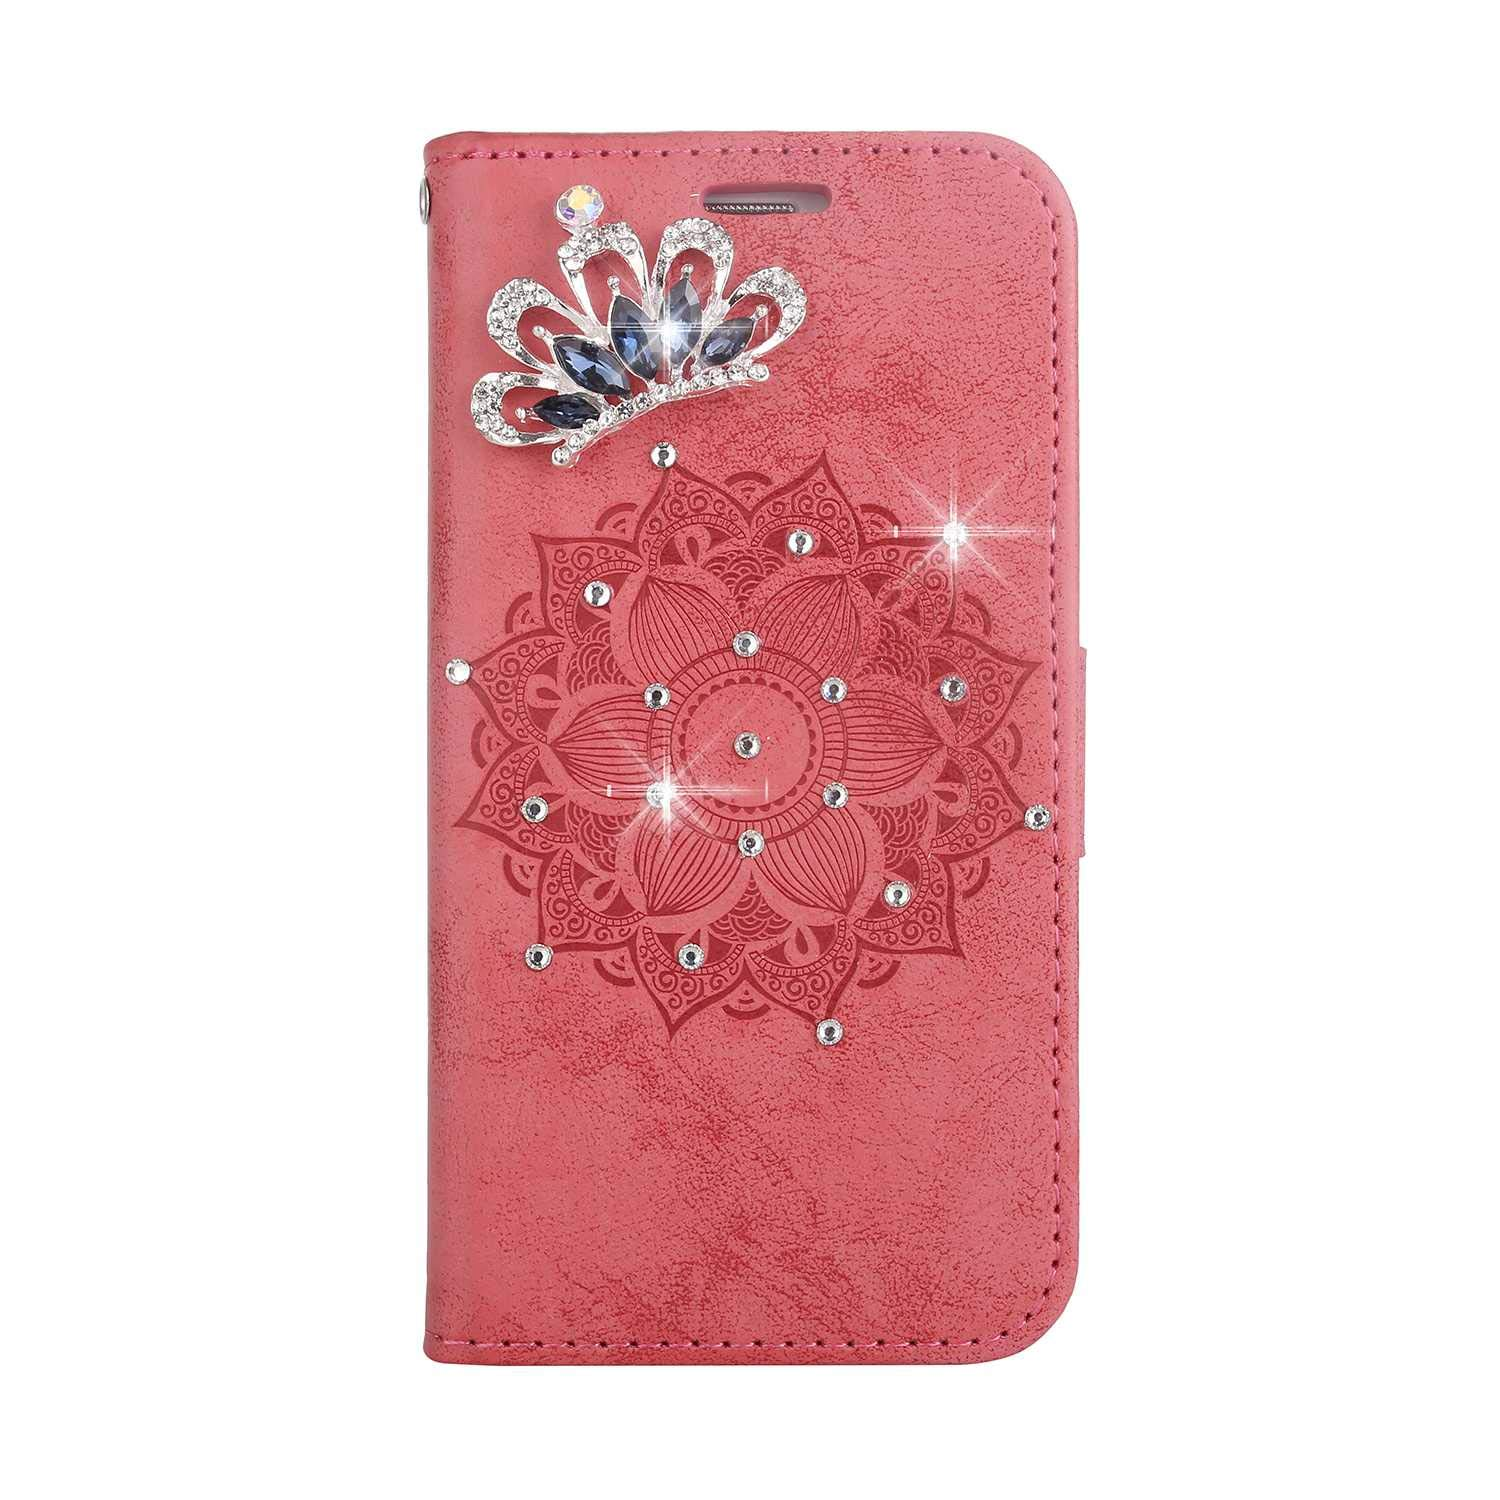 Bear Village Galaxy S8 Case Cheap super special price Resistant C Leather Scratch Max 66% OFF Premium